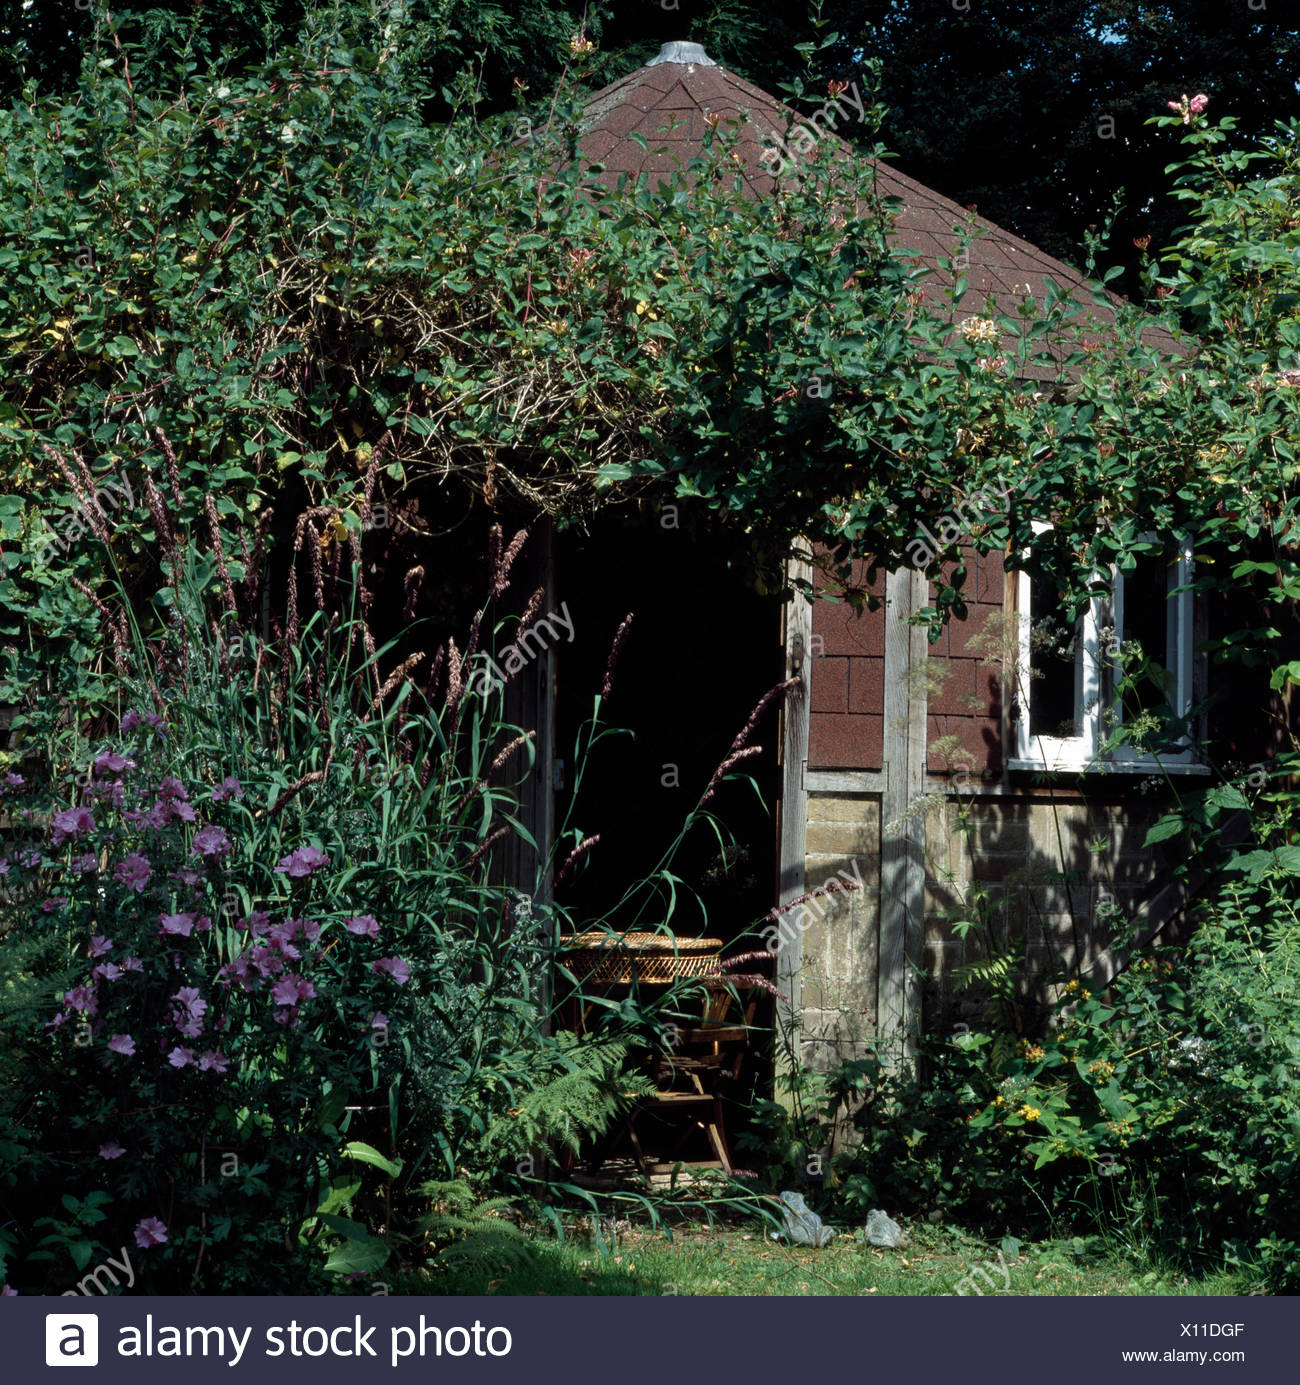 Purple hibiscus growing beside wooden summer h ouse in country garden - Stock Image